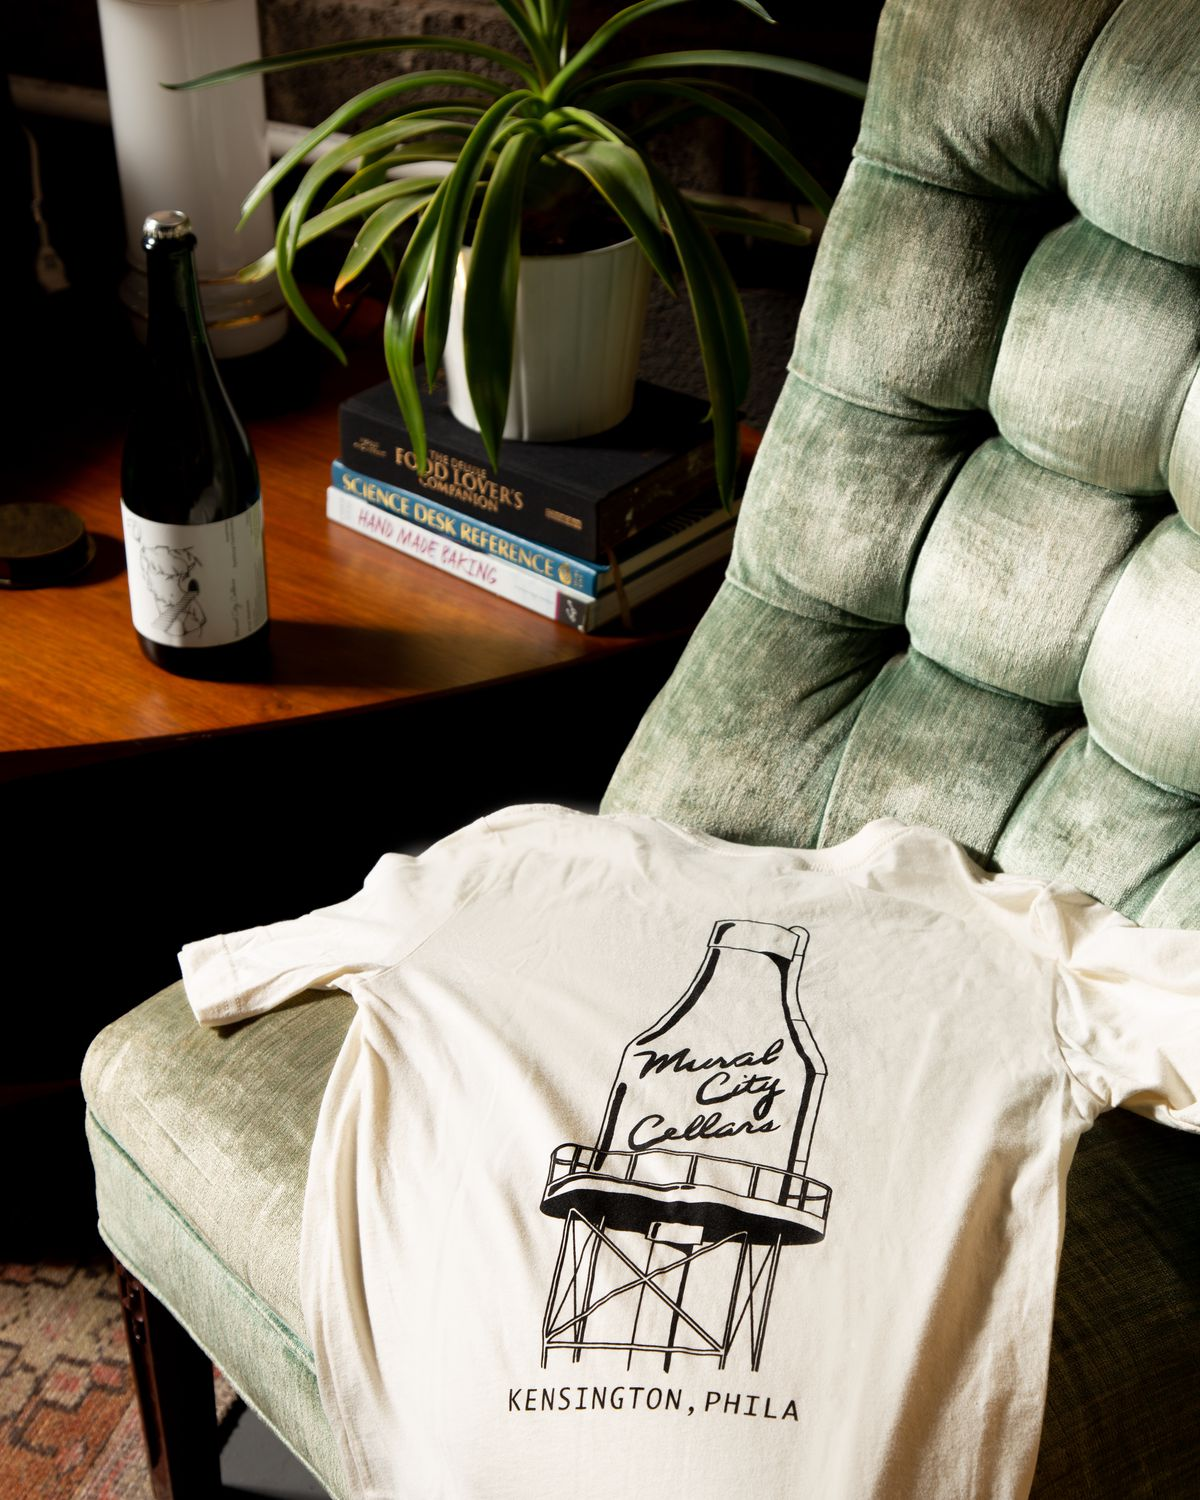 a mural city cellars t-shirt draped over a velvet green couch